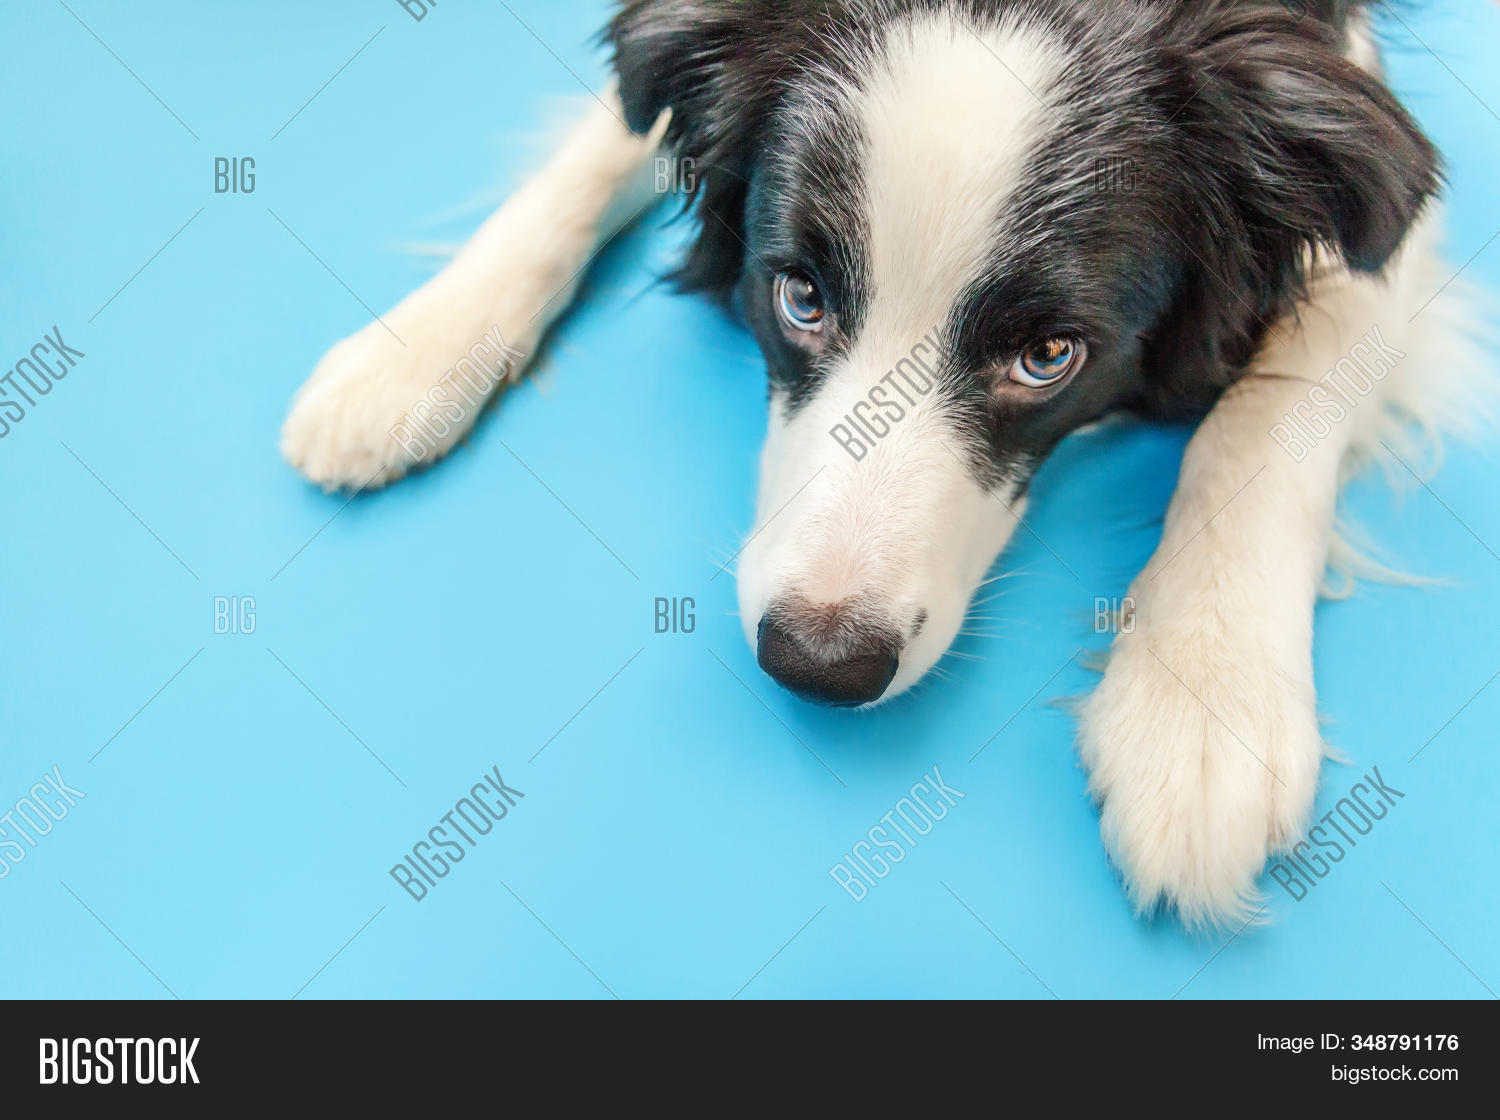 Funny Studio Portrait Of Cute Smilling Puppy Dog Border Collie Isolated On Blue Background. New Love